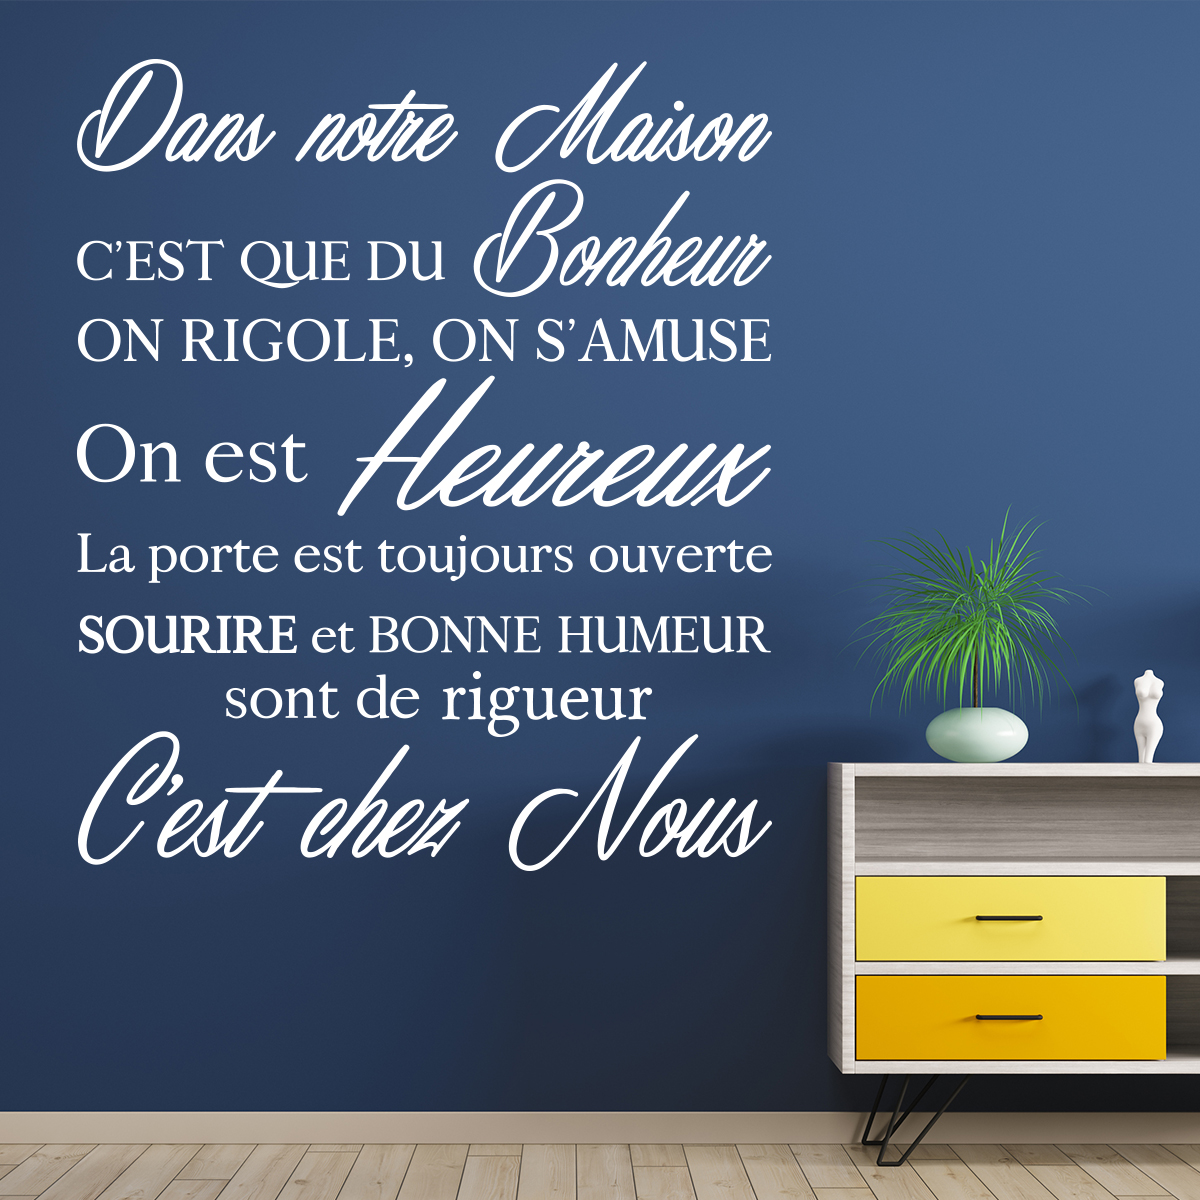 sticker citation dans notre maison c 39 est que du bonheur. Black Bedroom Furniture Sets. Home Design Ideas